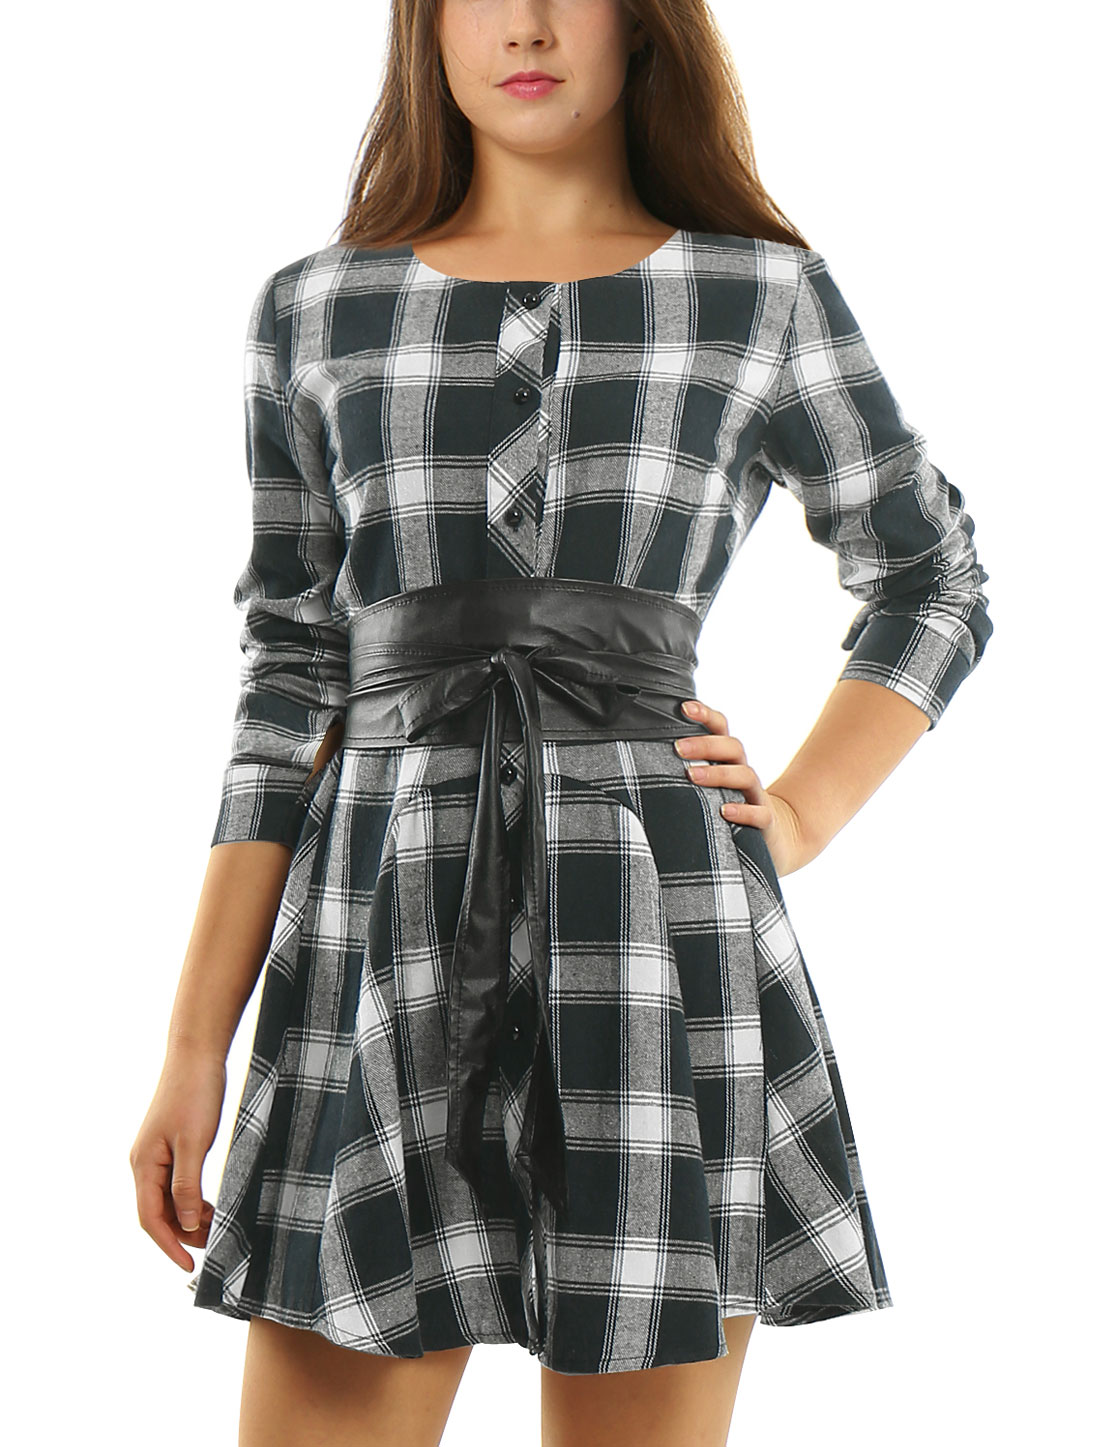 Women Plaids Long Sleeves Belted A Line Shirt Dress Navy Blue White M